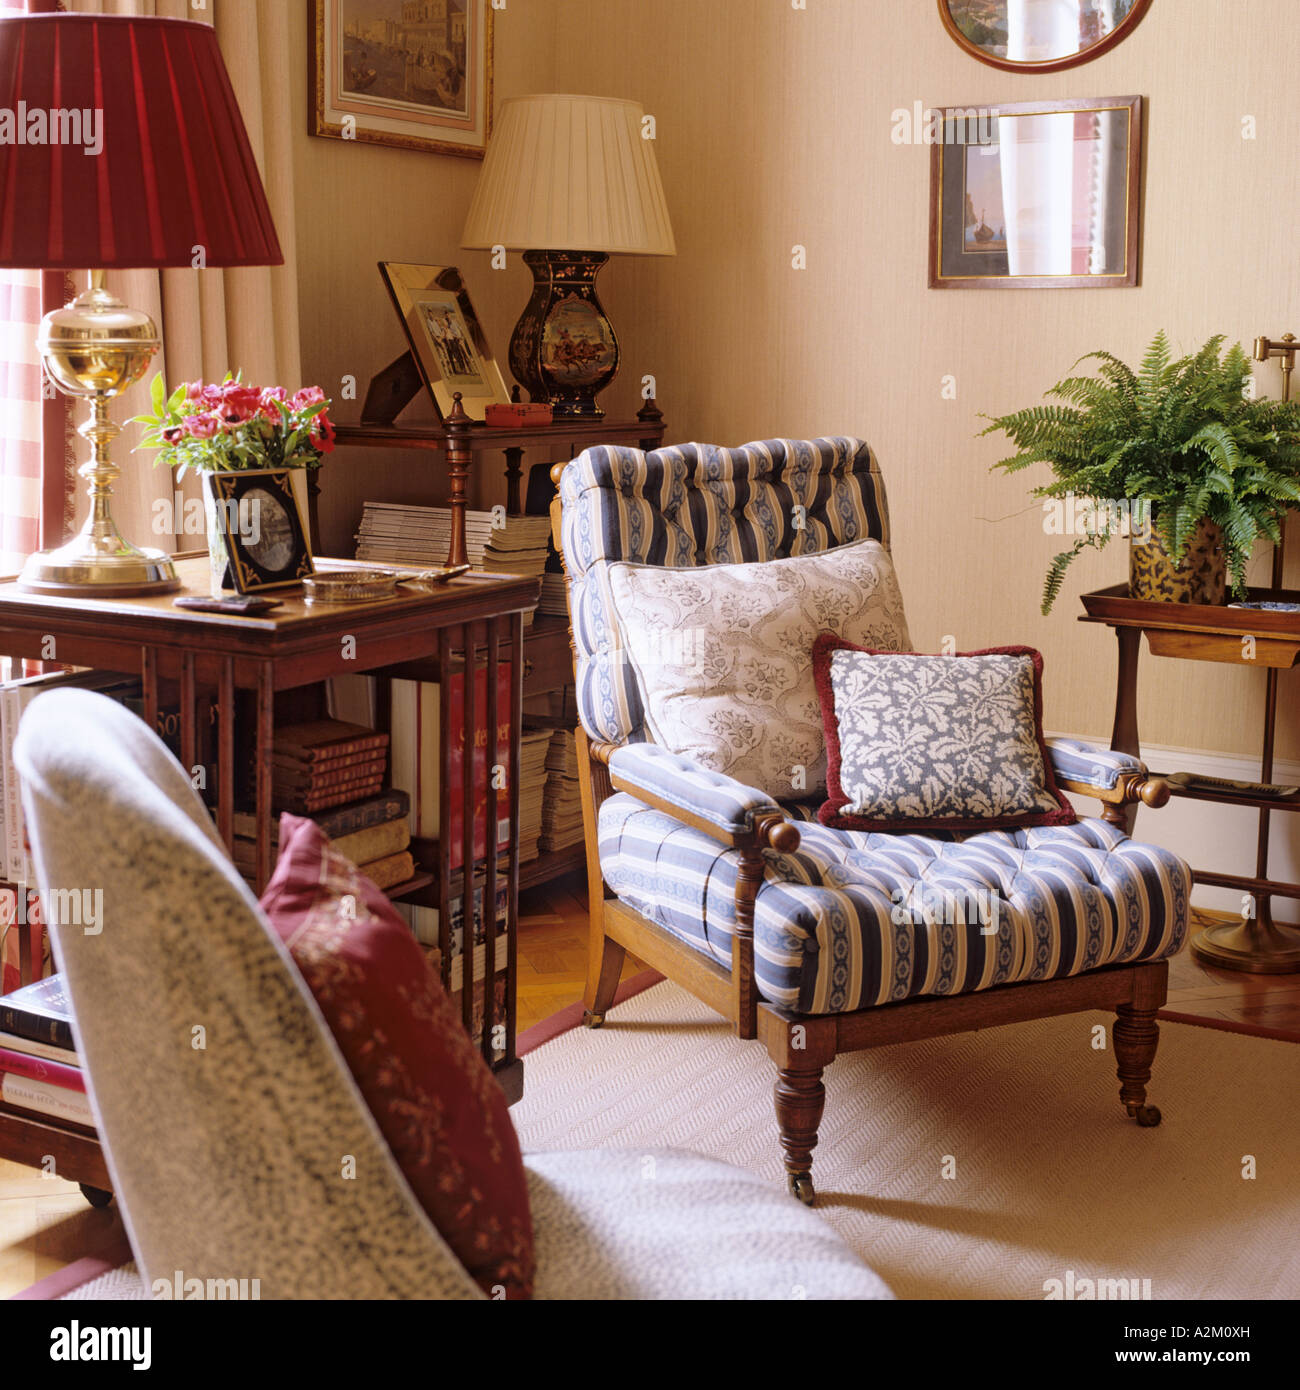 Upholstered armchair with cushions and lamps on shelf table - Stock Image